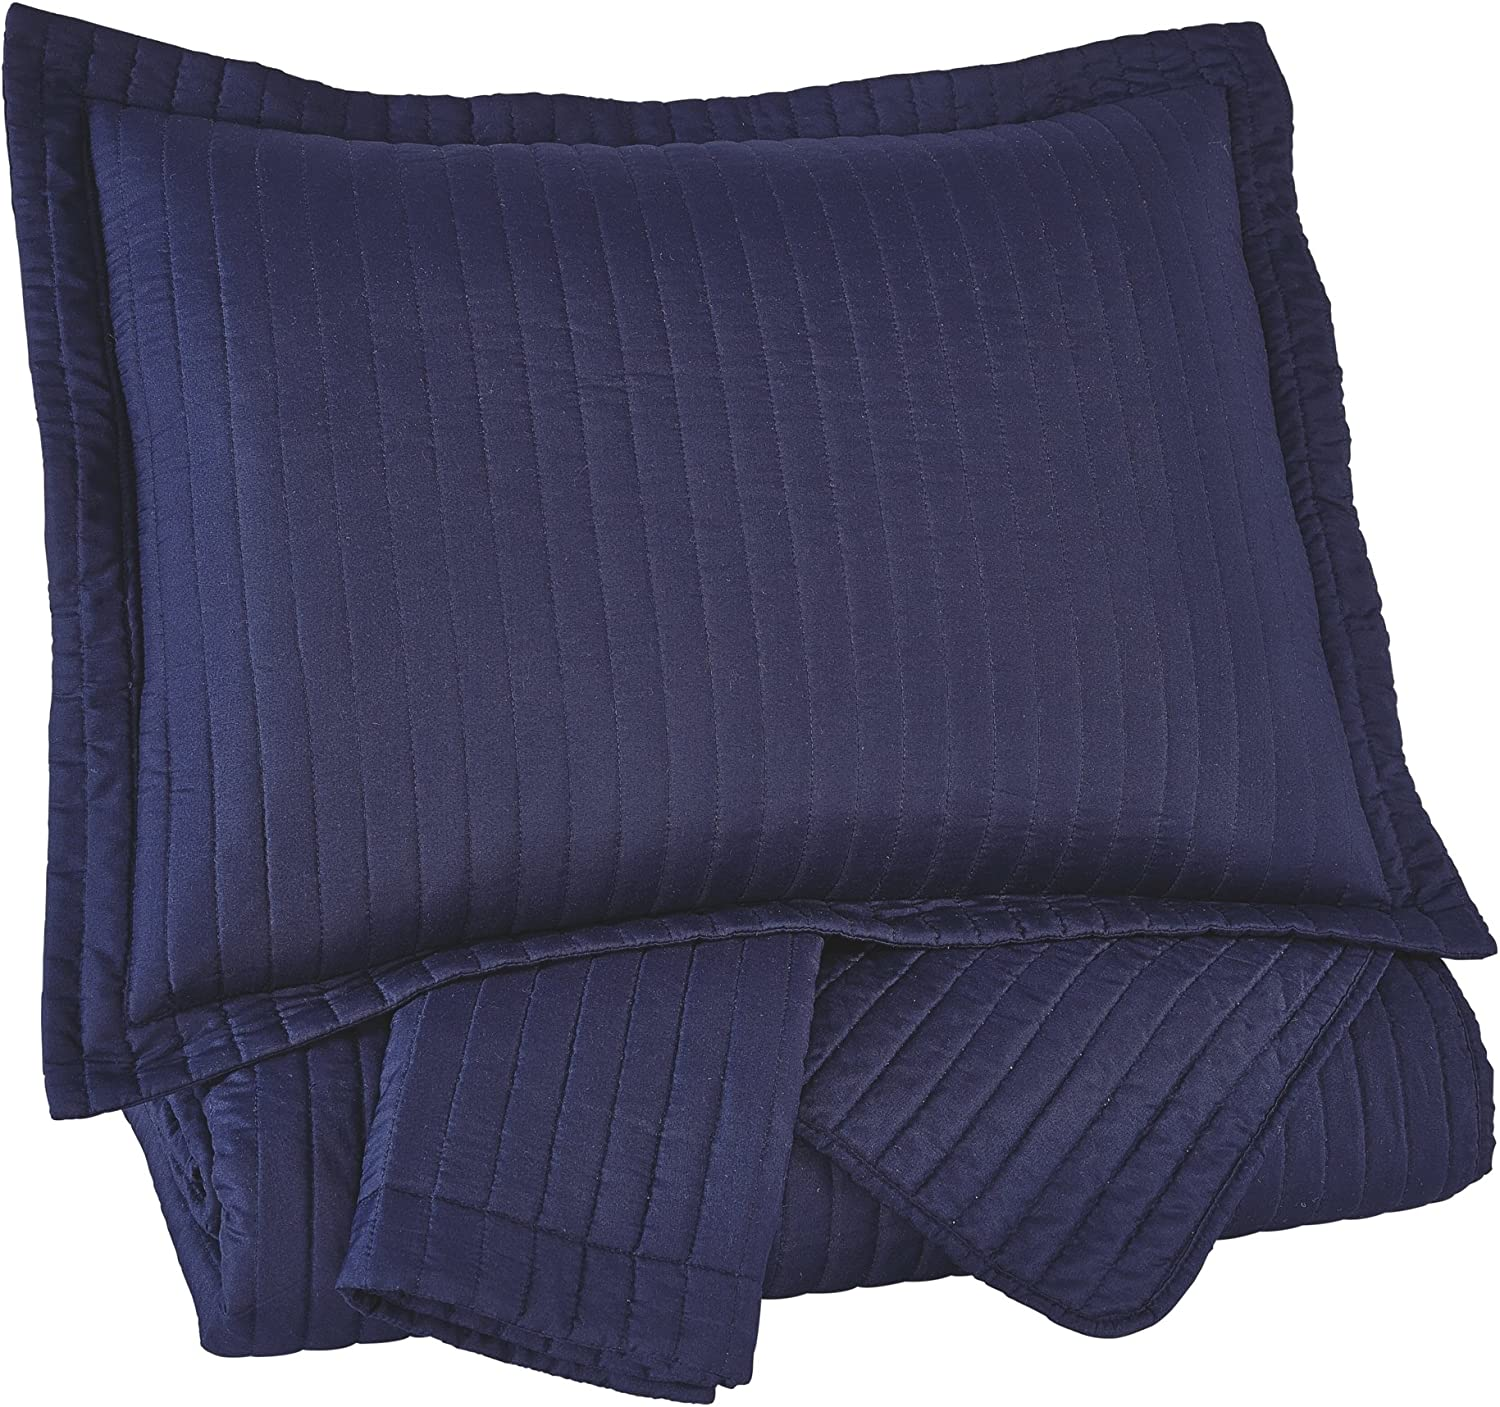 Ashley Furniture Signature Design - Raleda Coverlet Set - King - Contains 3 Pieces - Navy